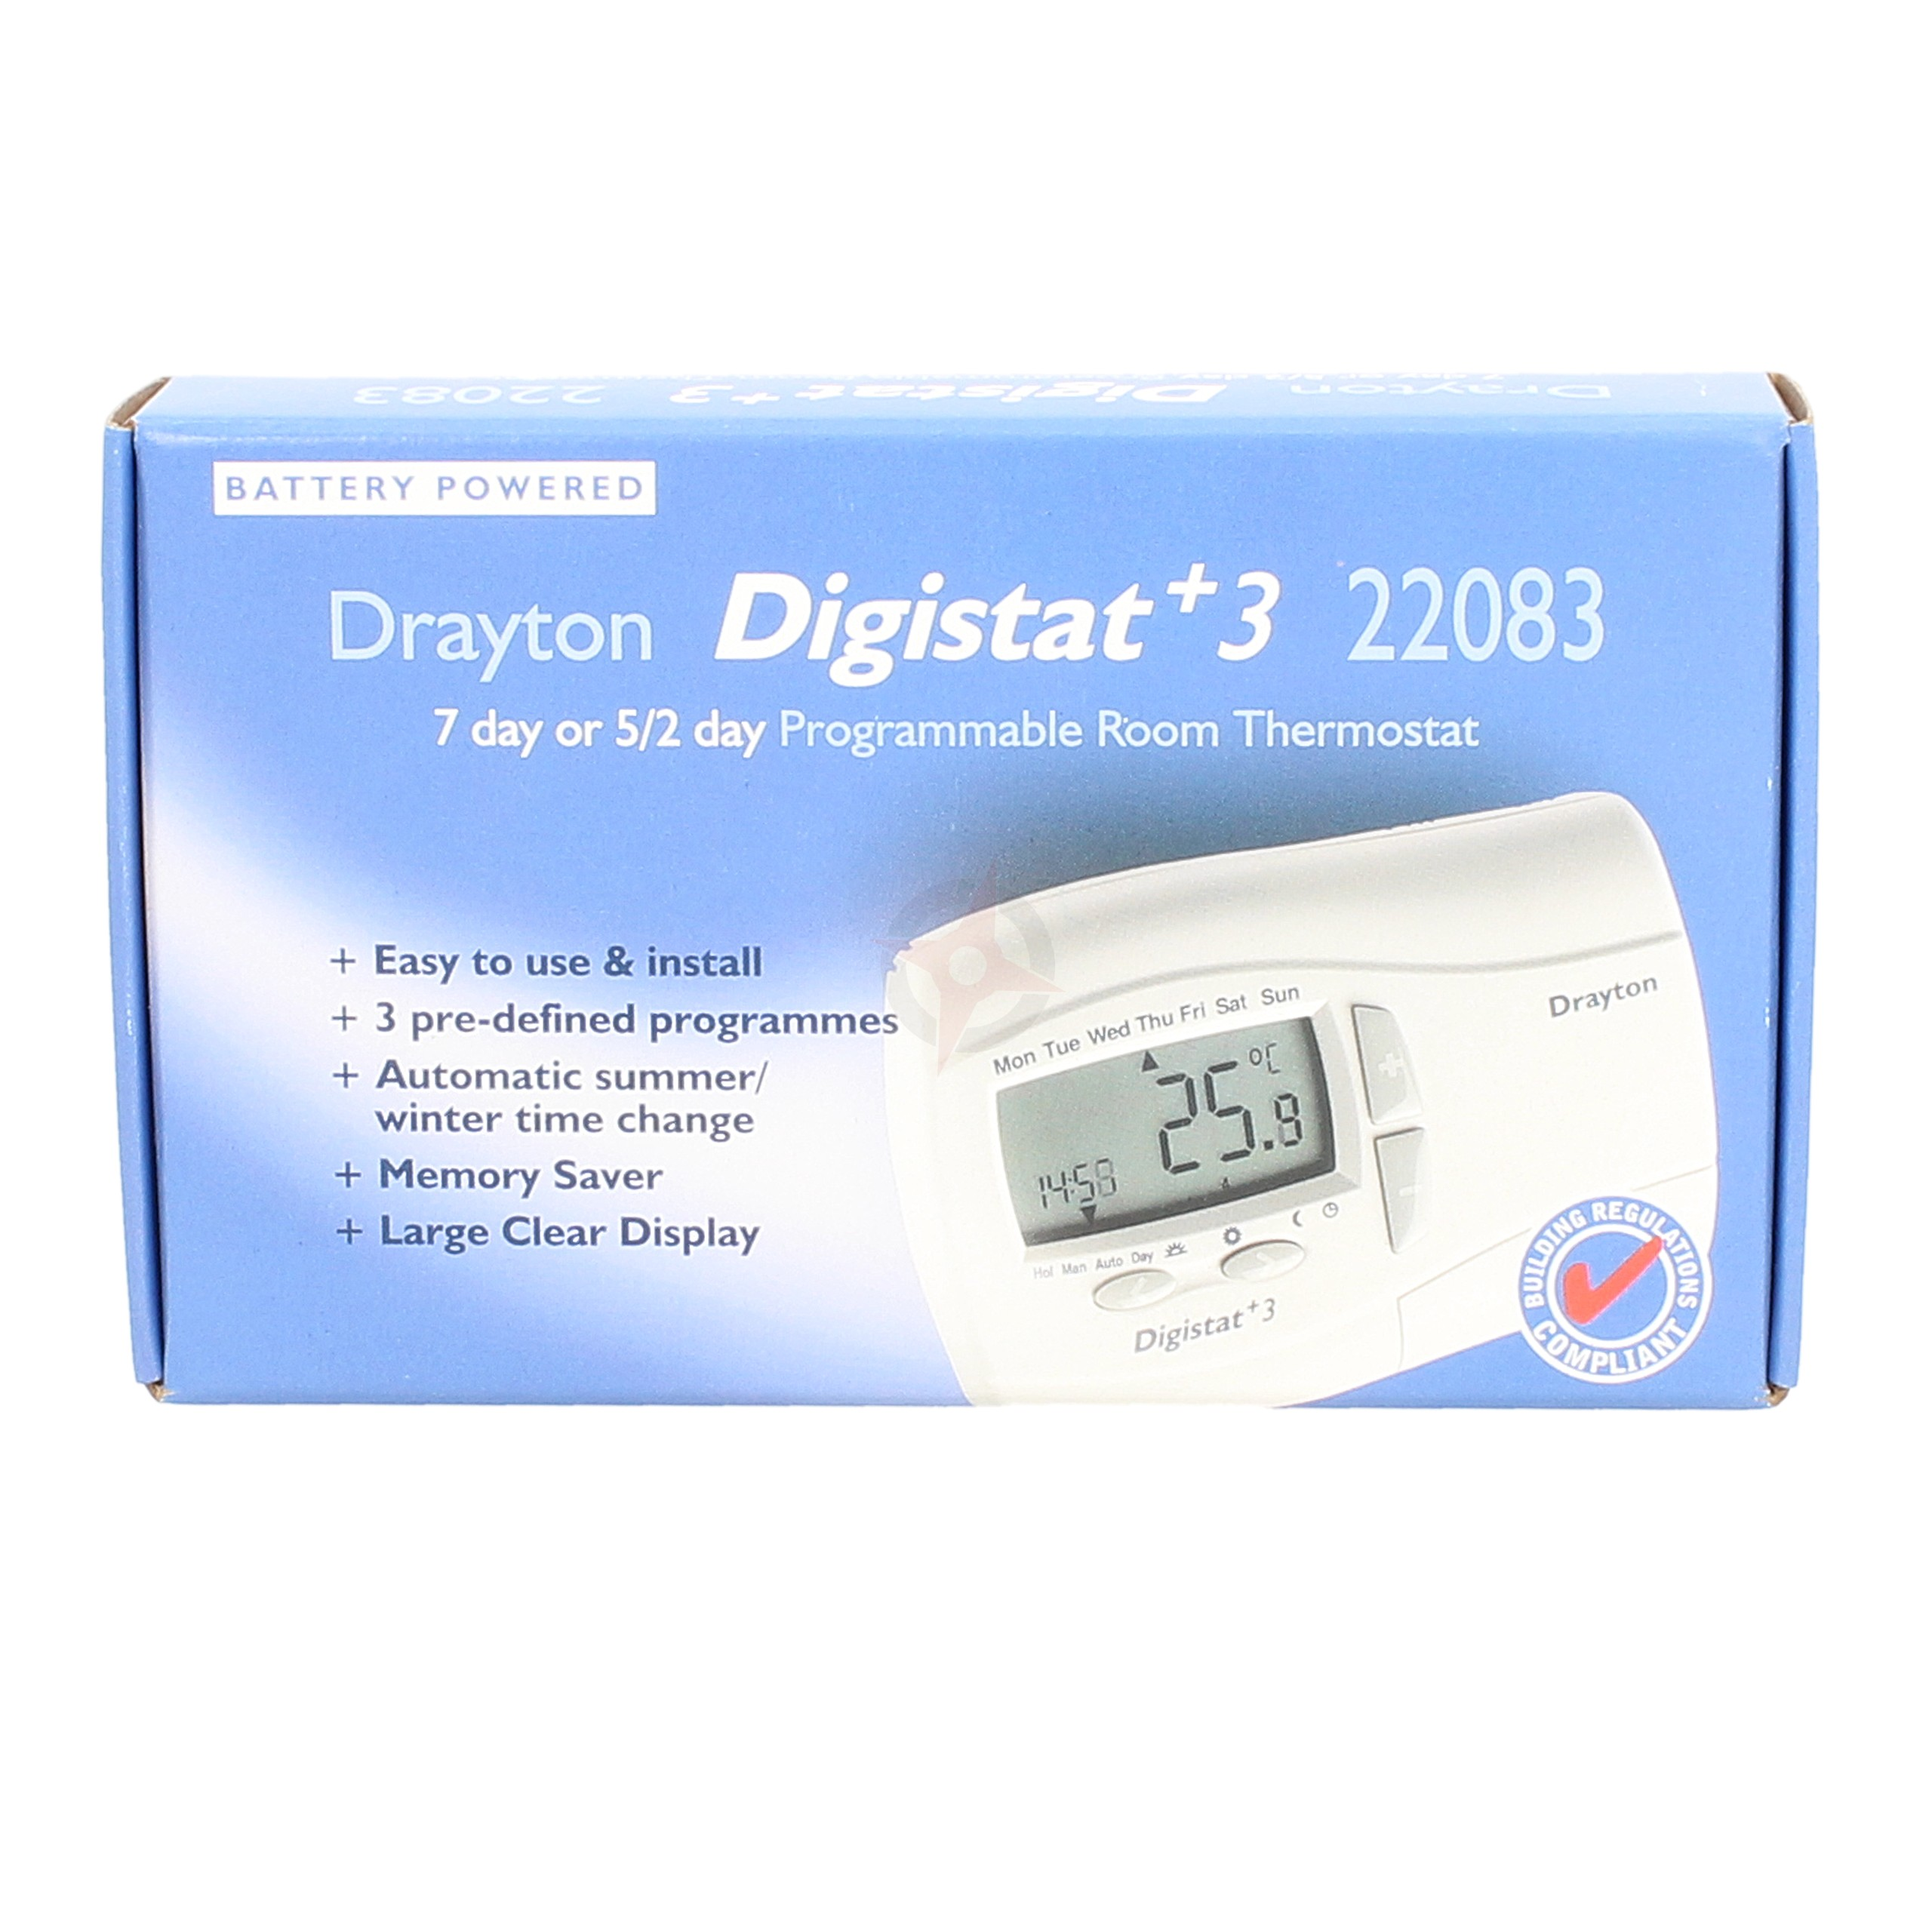 Drayton 7 Day Programmable Room Stat Digistat+3